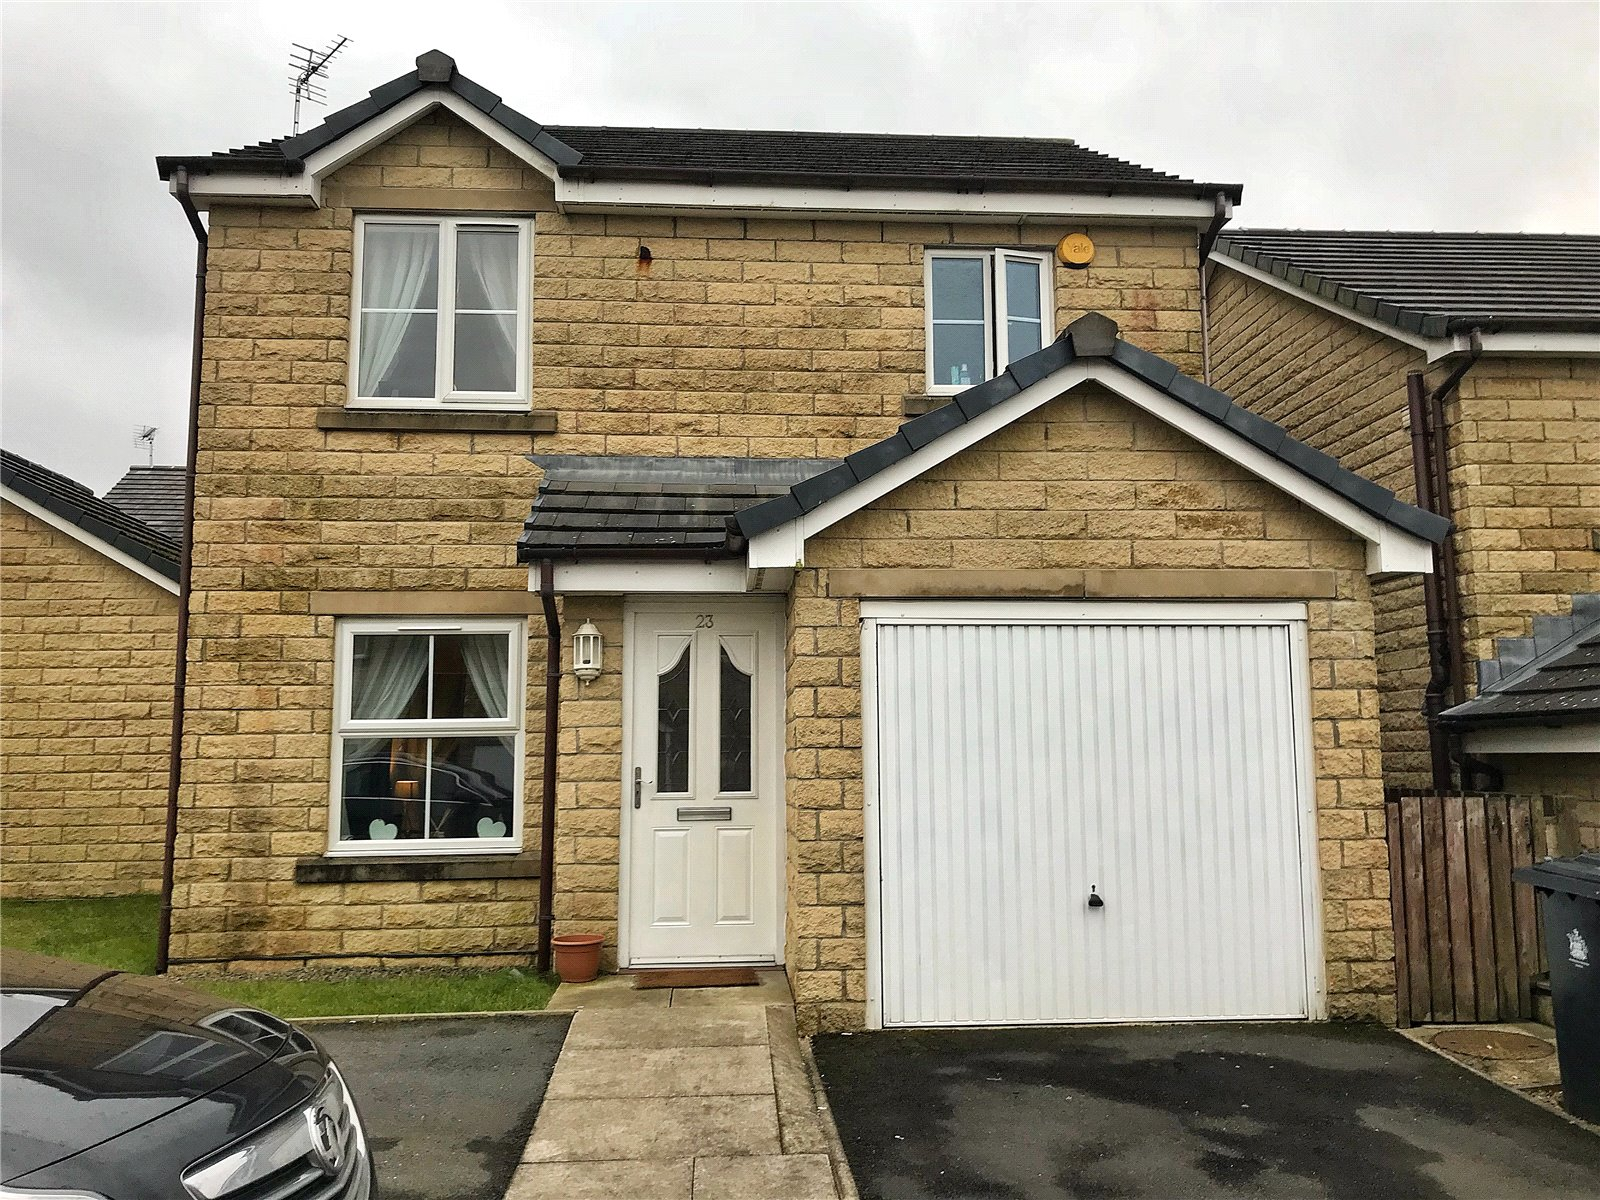 3 Bedrooms Detached House for sale in Brambling Drive, Bacup, Lancashire, OL13